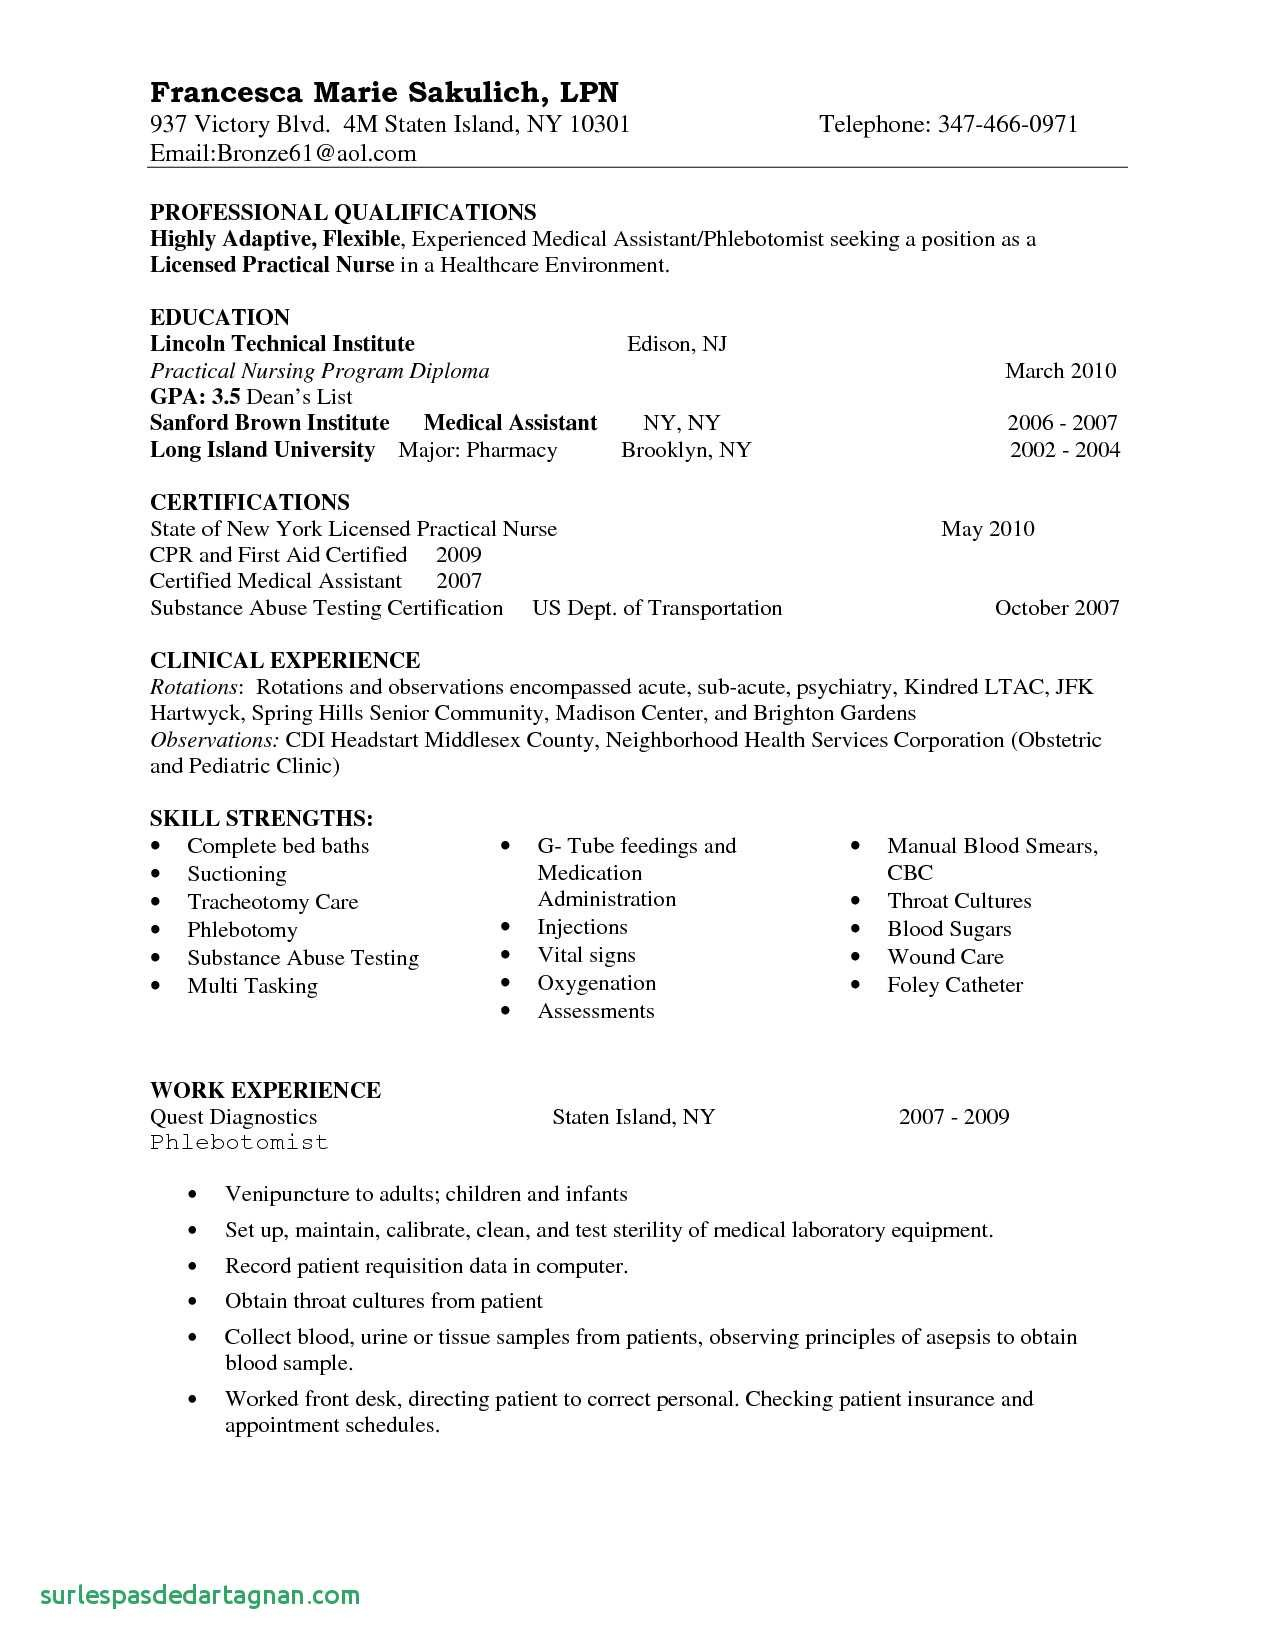 Resume Template for Healthcare - Medical Resume Template Free Elegant New Graduate Nurse Resume